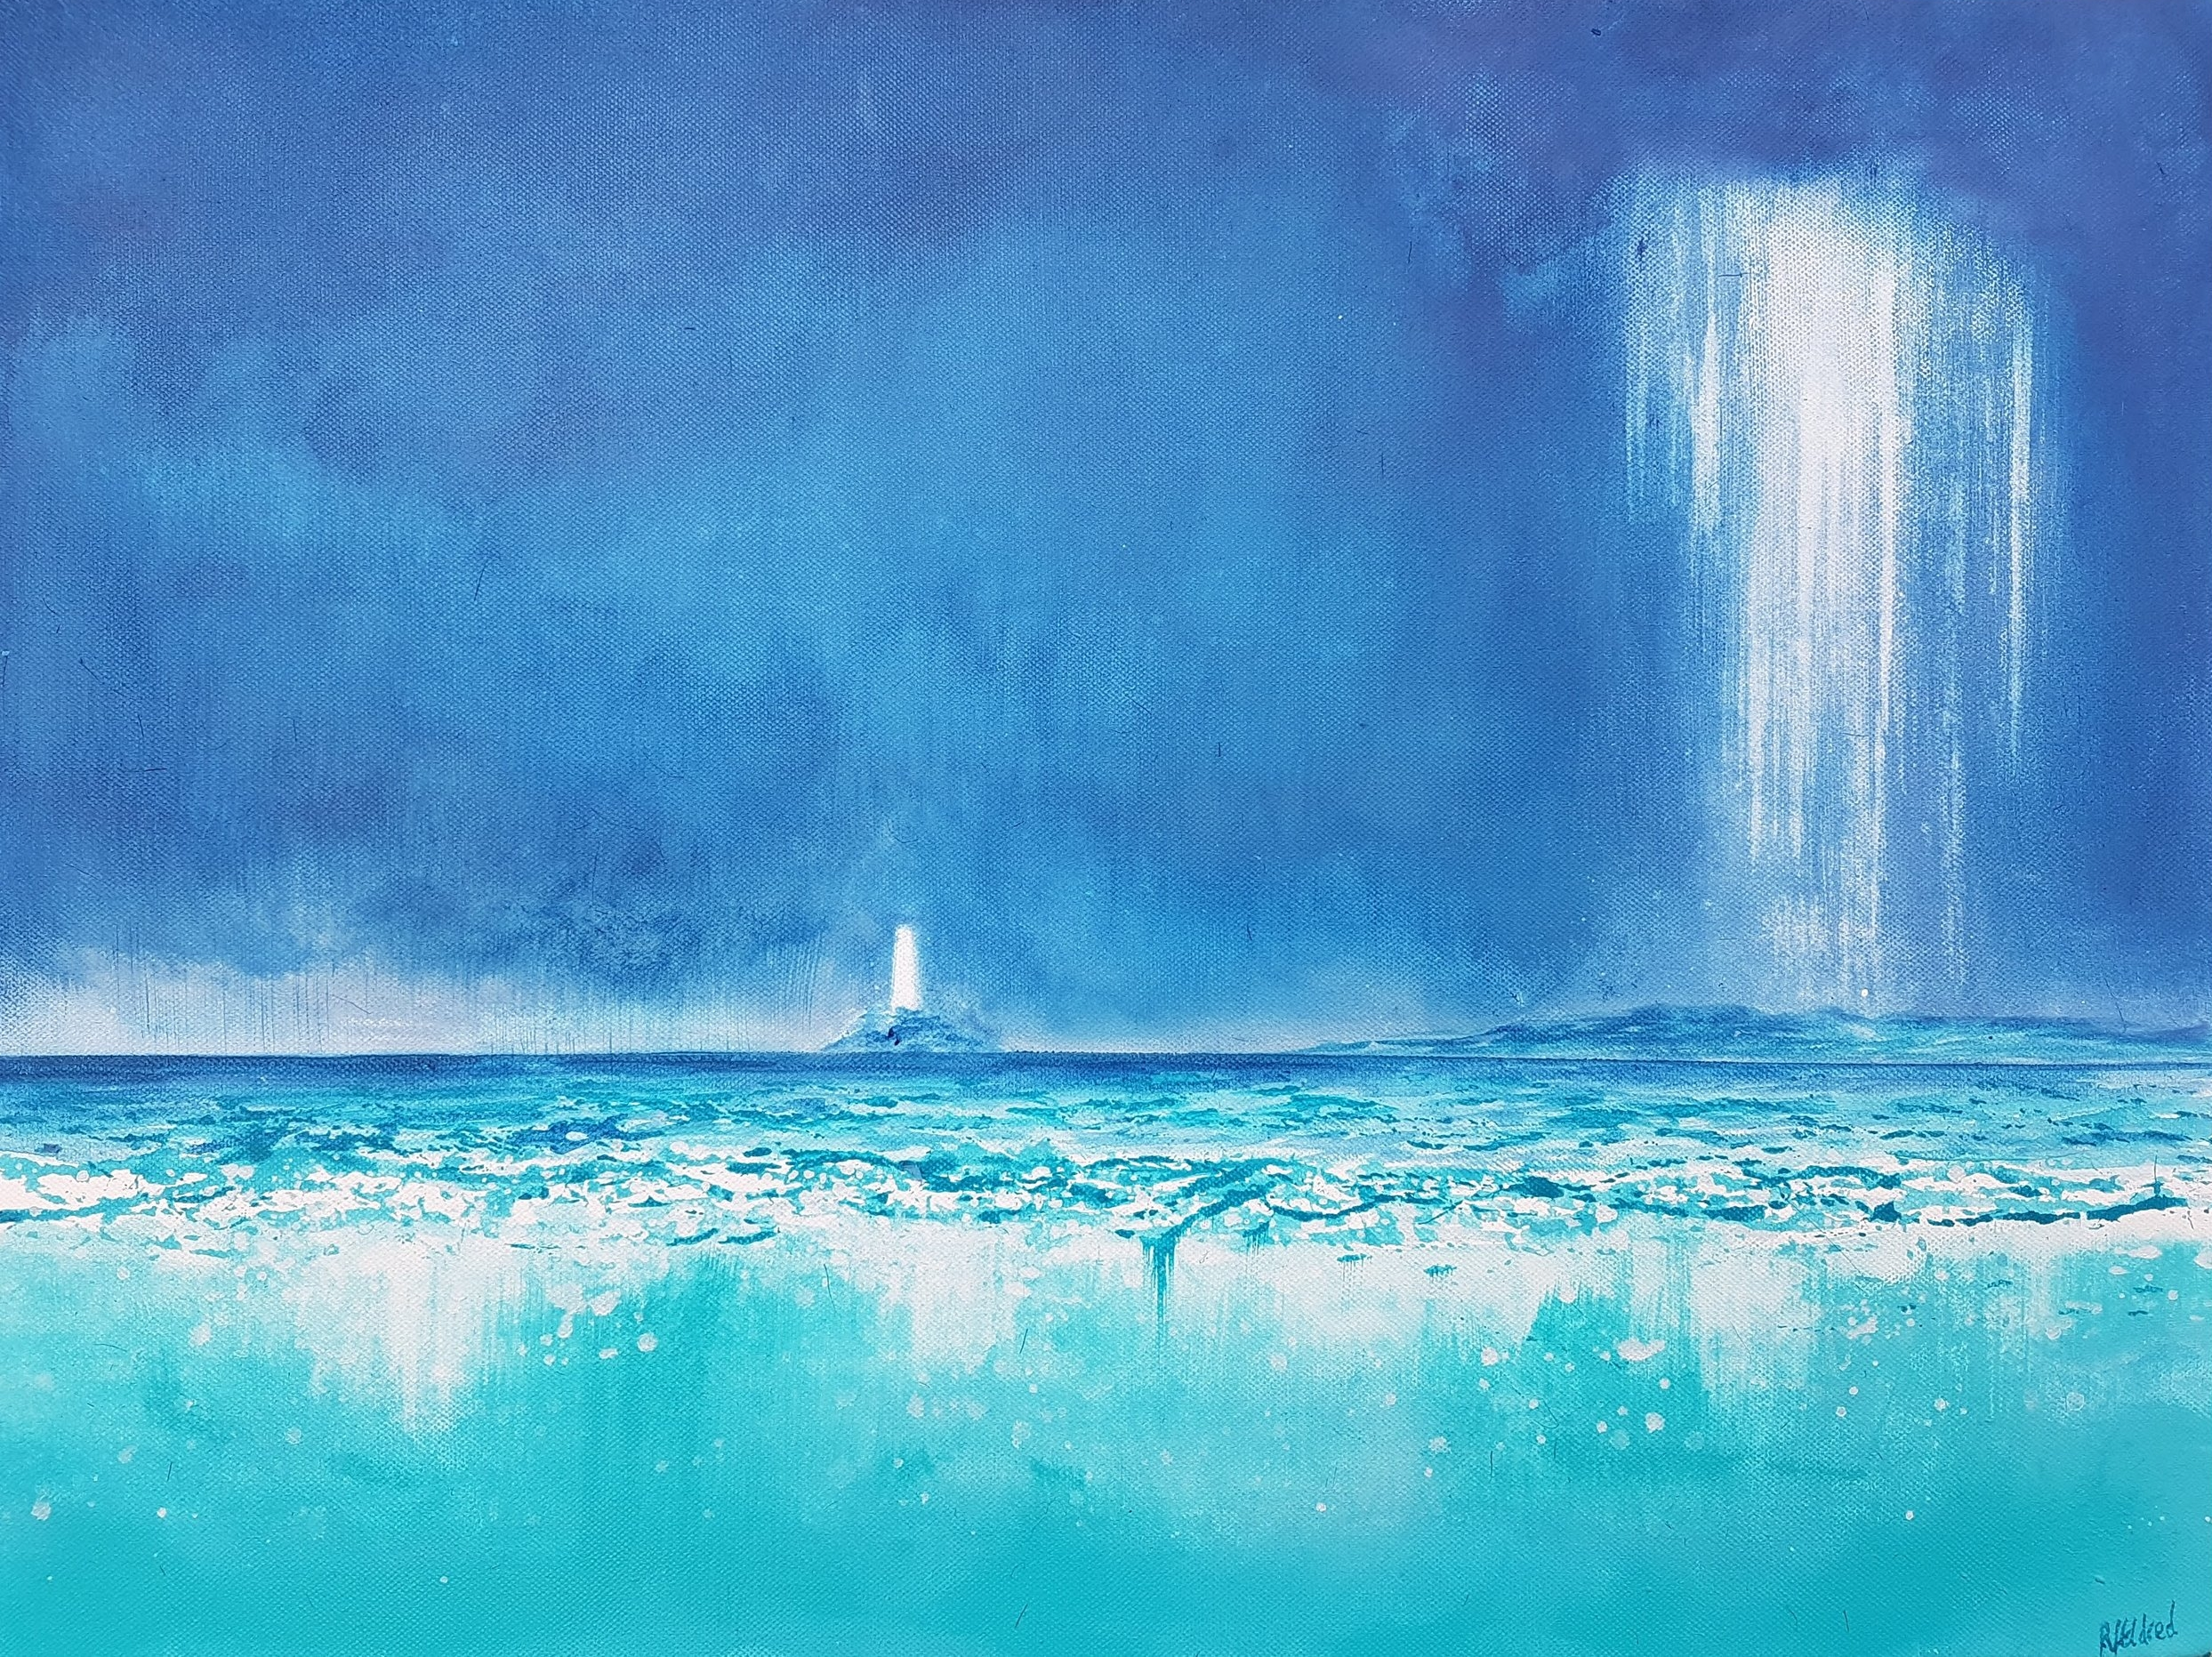 Godrevy Storms - Limited Edition of 25 at Size A5* : A5 £35Limited Edition of 10 at Size A3*: A3 £60